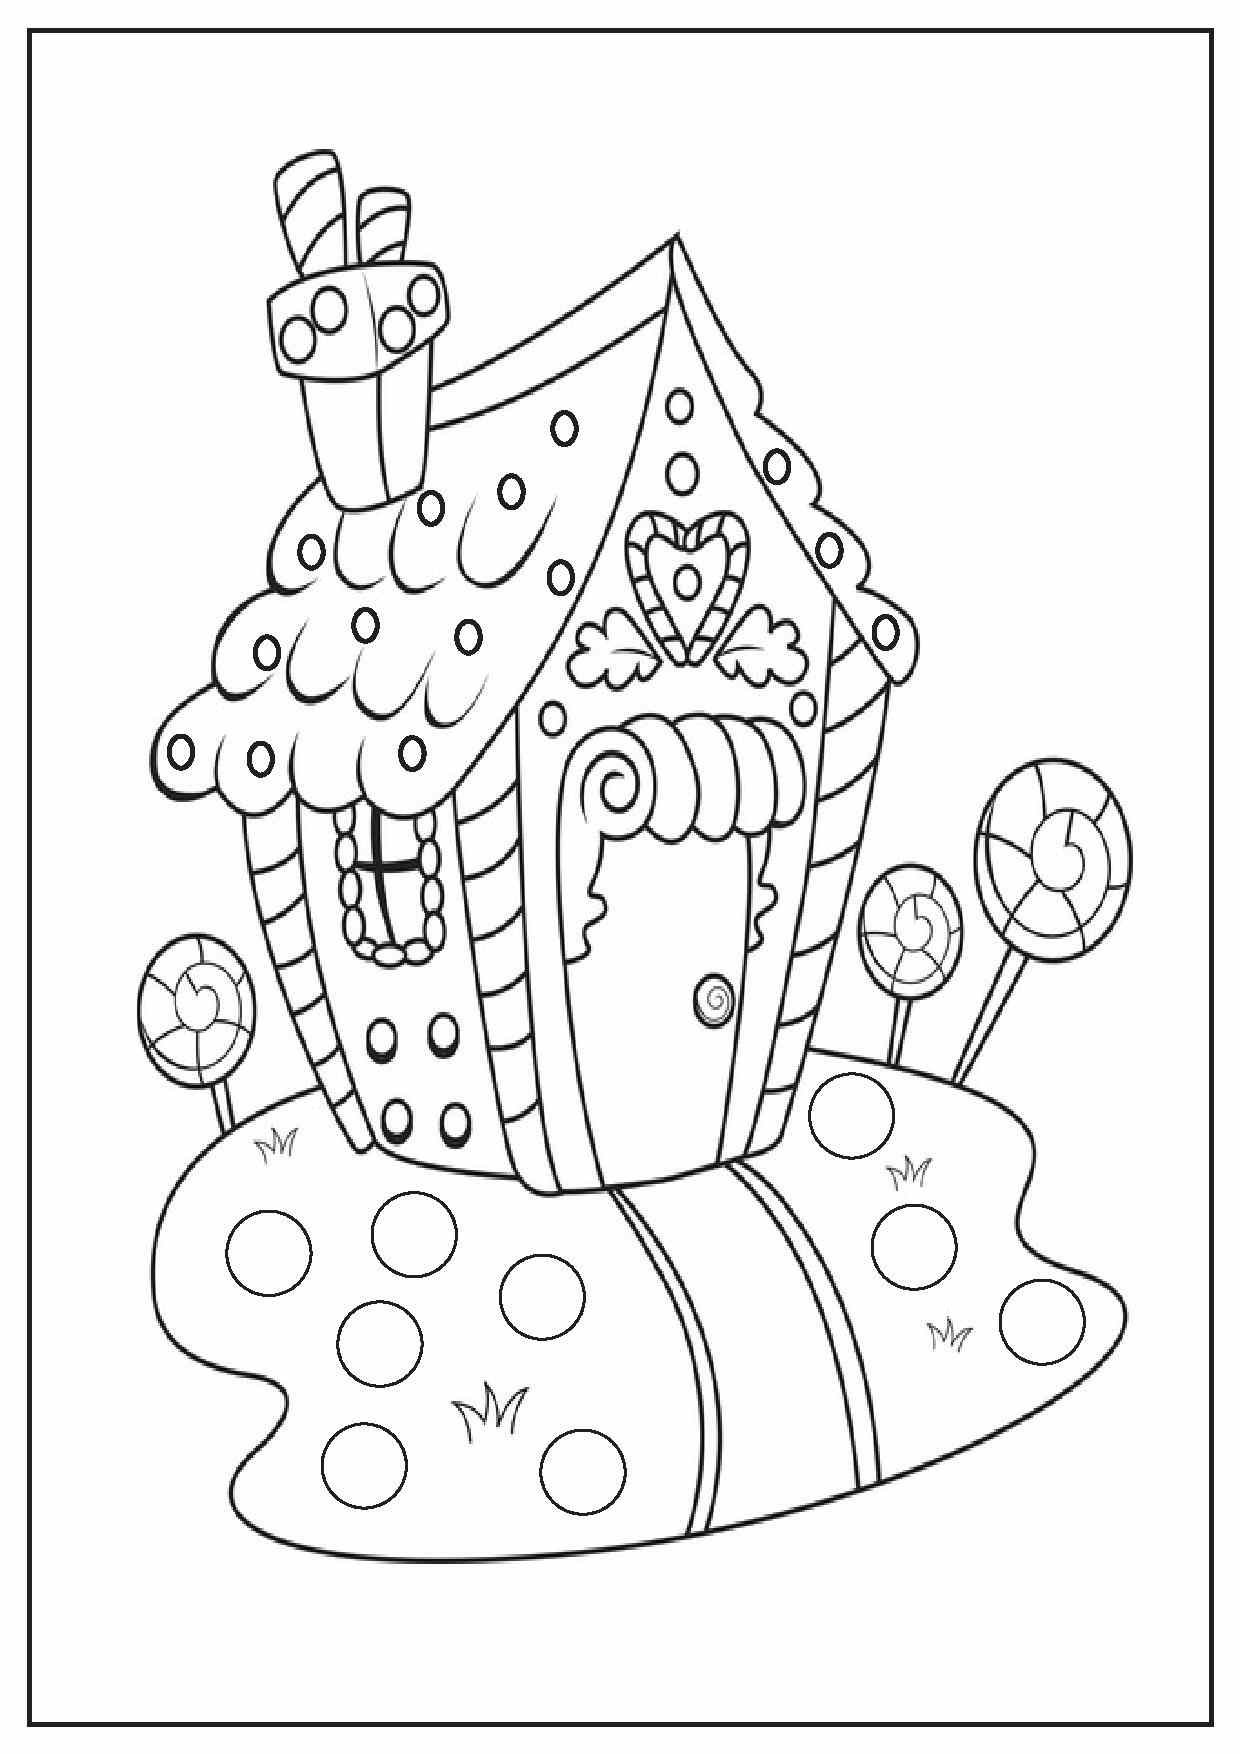 Christmas Coloring Pages For 3 Year Olds With Printable